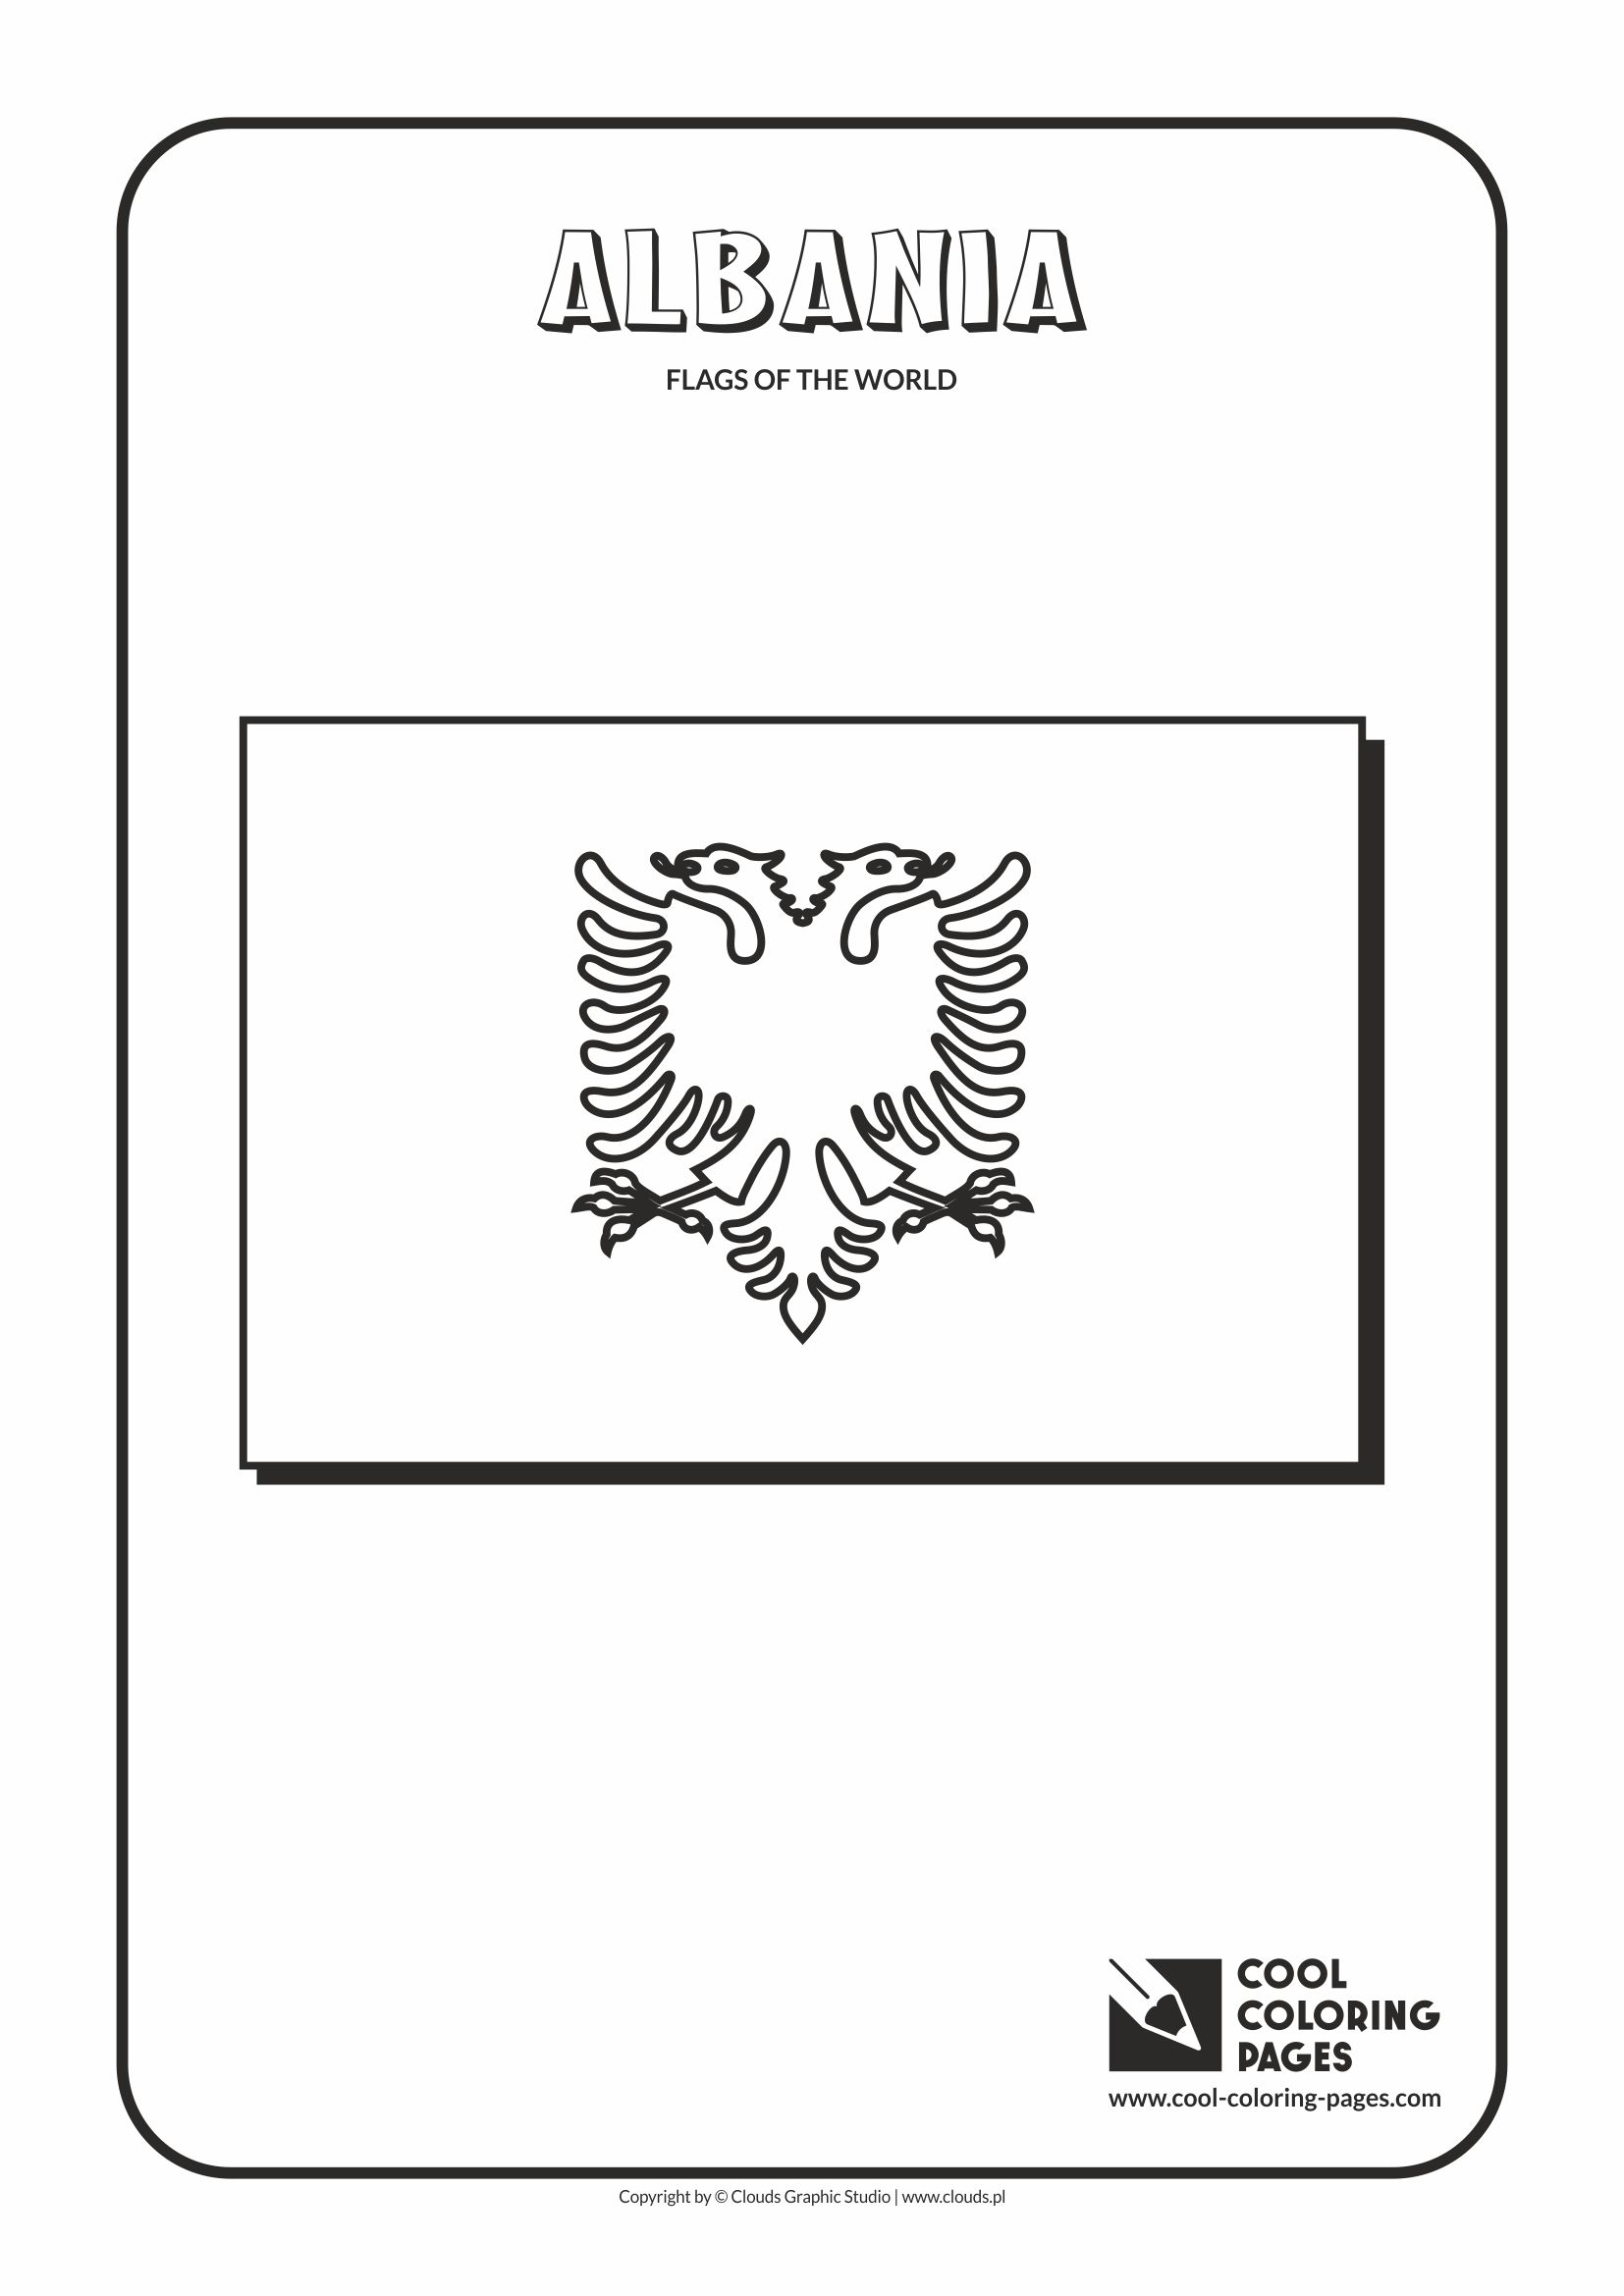 Cool Coloring Pages - Flags of the world / Albania flag